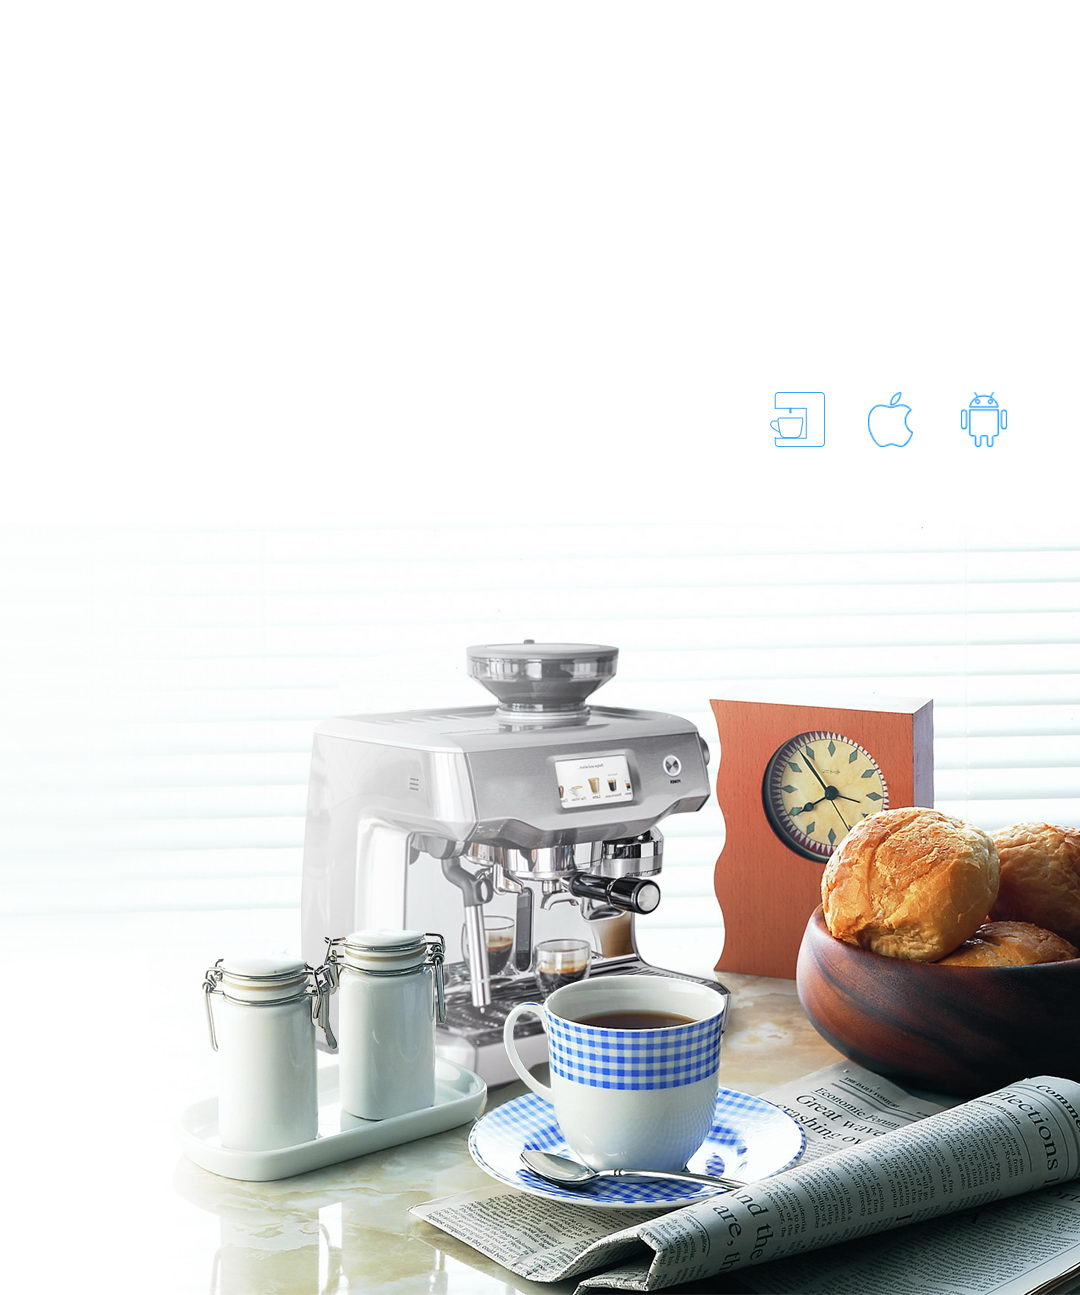 Smart kitchen will make your coffee ready at morning - TIS